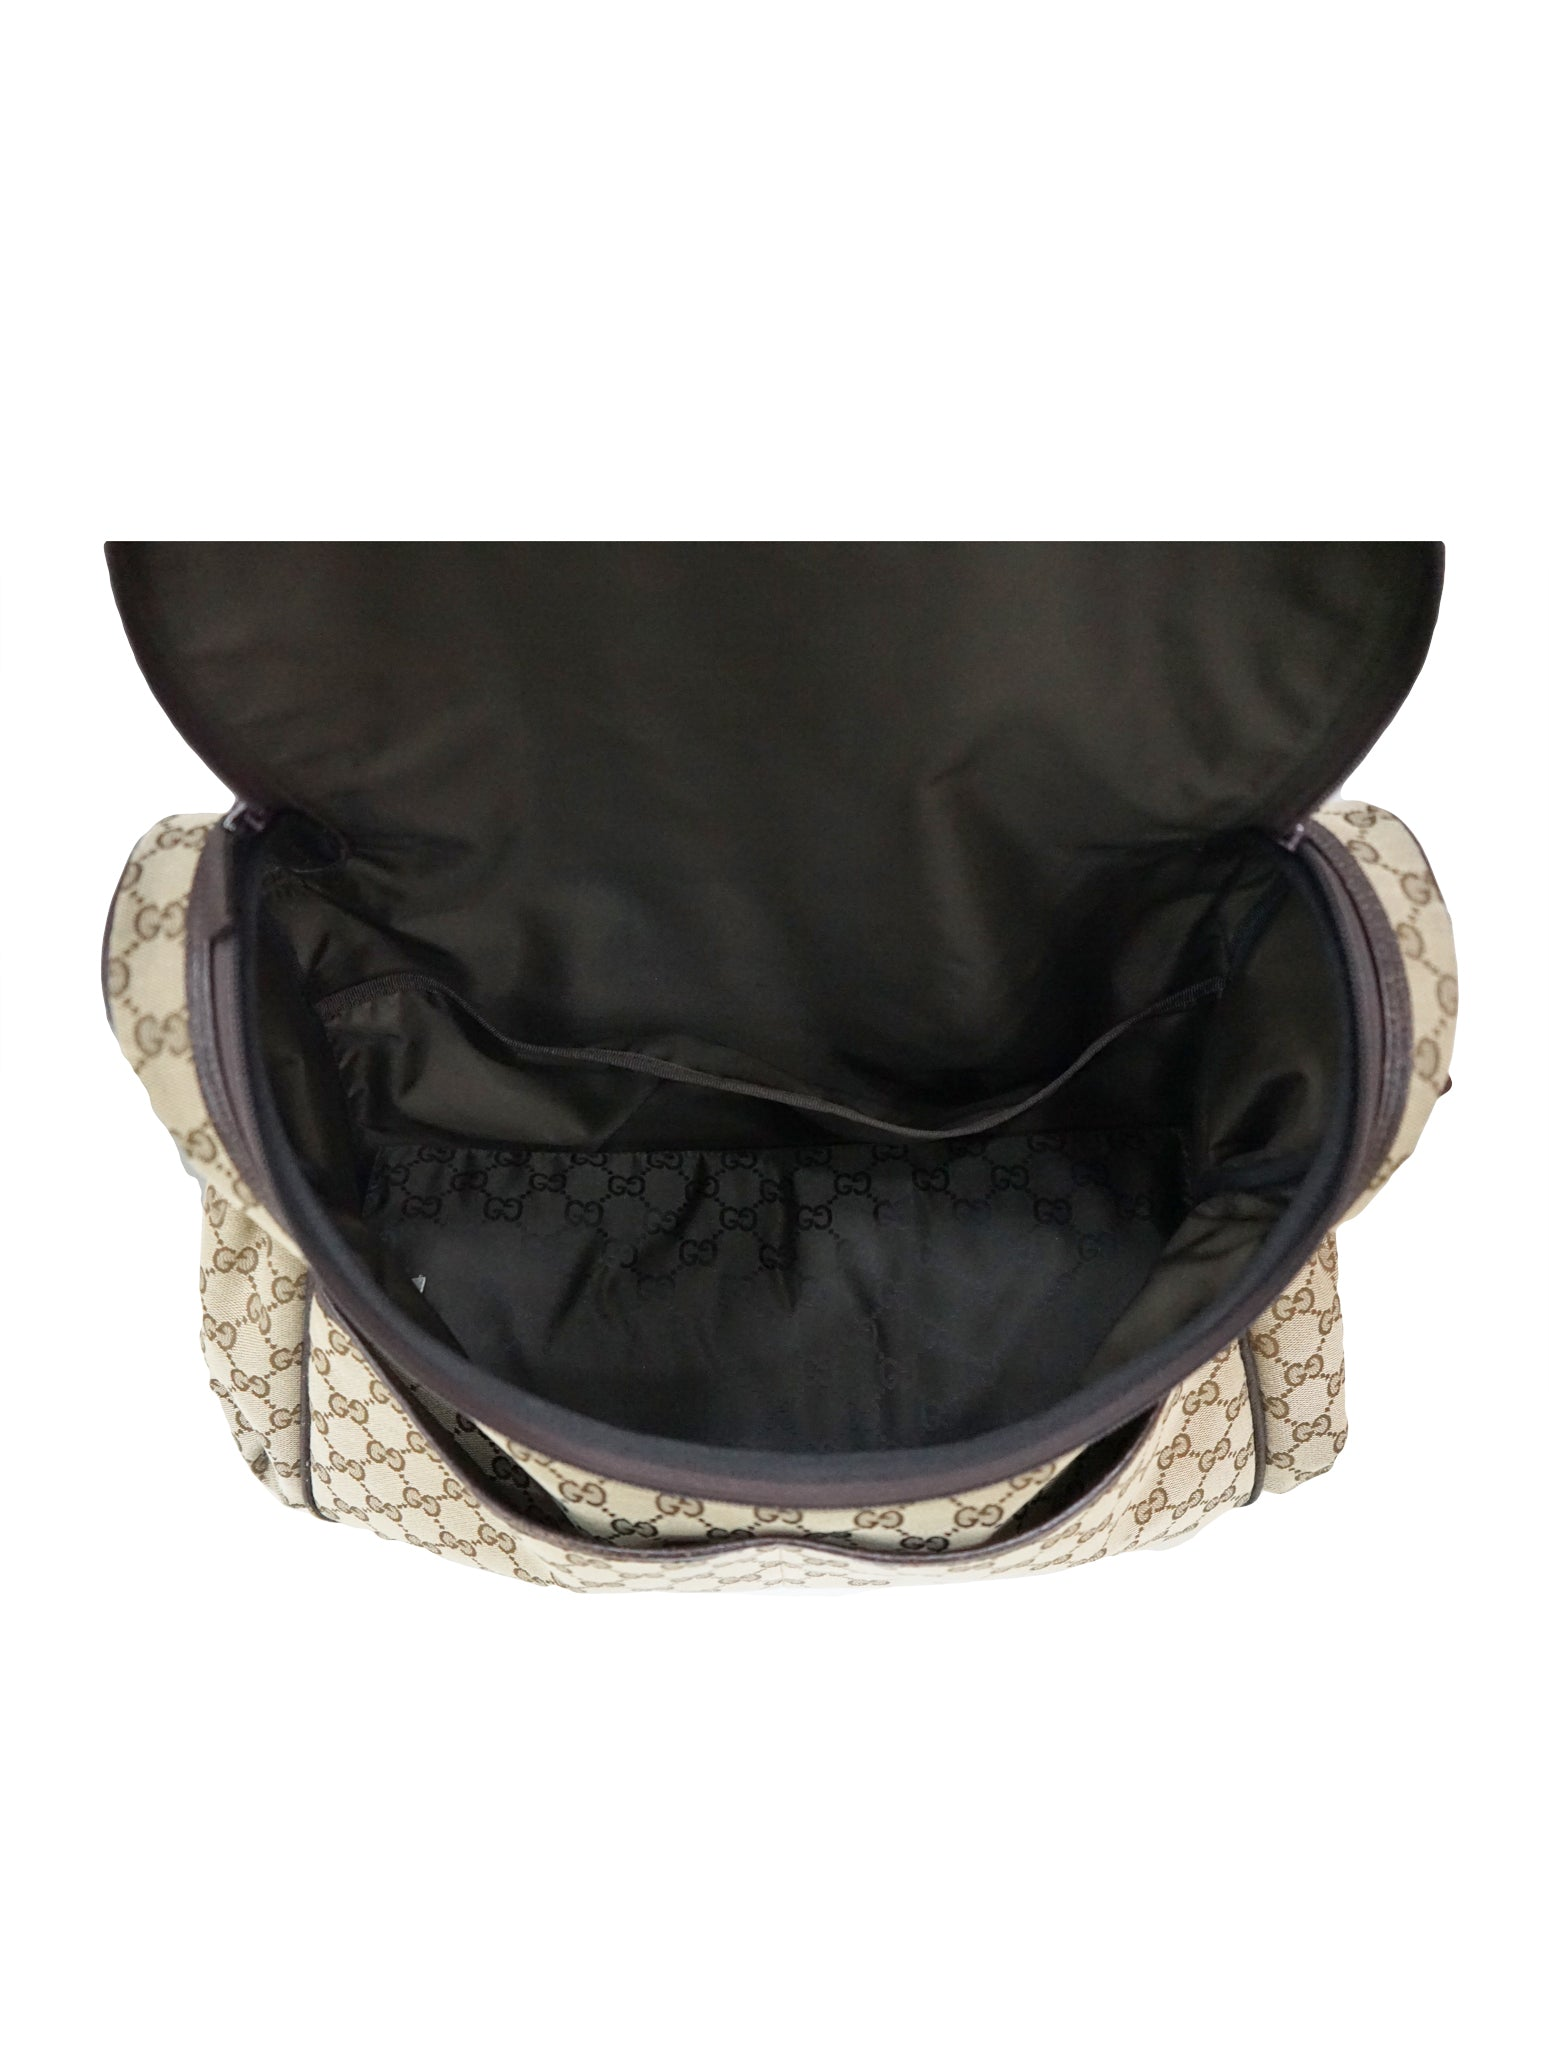 GG BABY CHANGING BAG